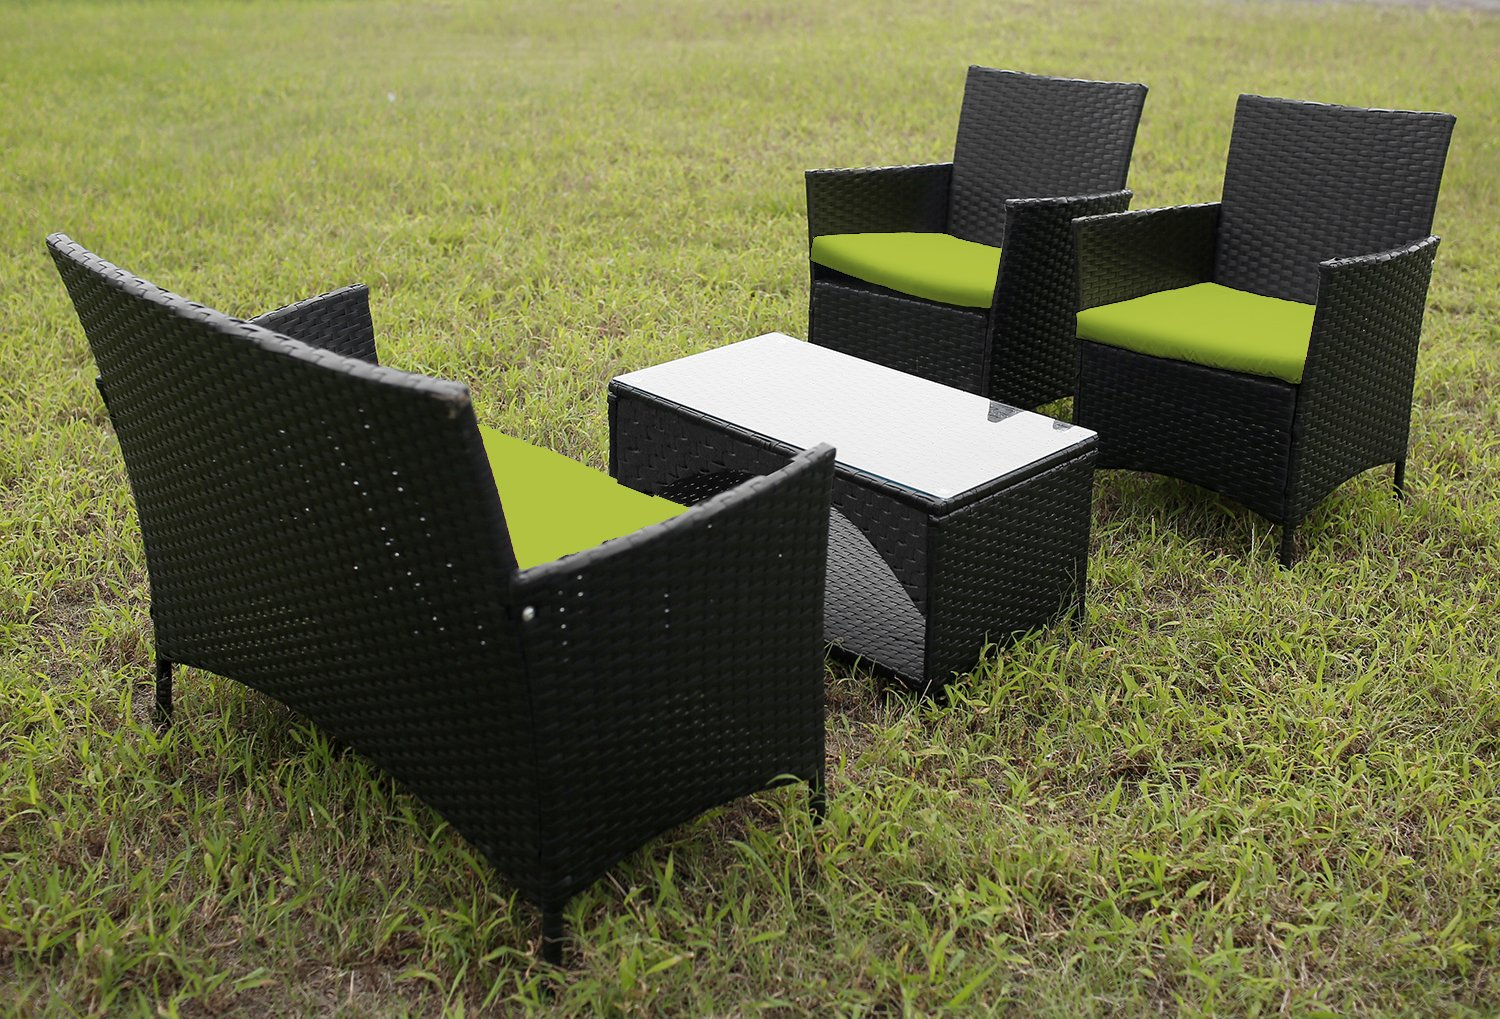 Amazon.com: Merax 4 PCS Cushioned Outdoor PE Wicker Patio Set Garden Lawn  Rattan Sofa Furniture Conversation Set (Green): Garden & Outdoor - Amazon.com: Merax 4 PCS Cushioned Outdoor PE Wicker Patio Set Garden